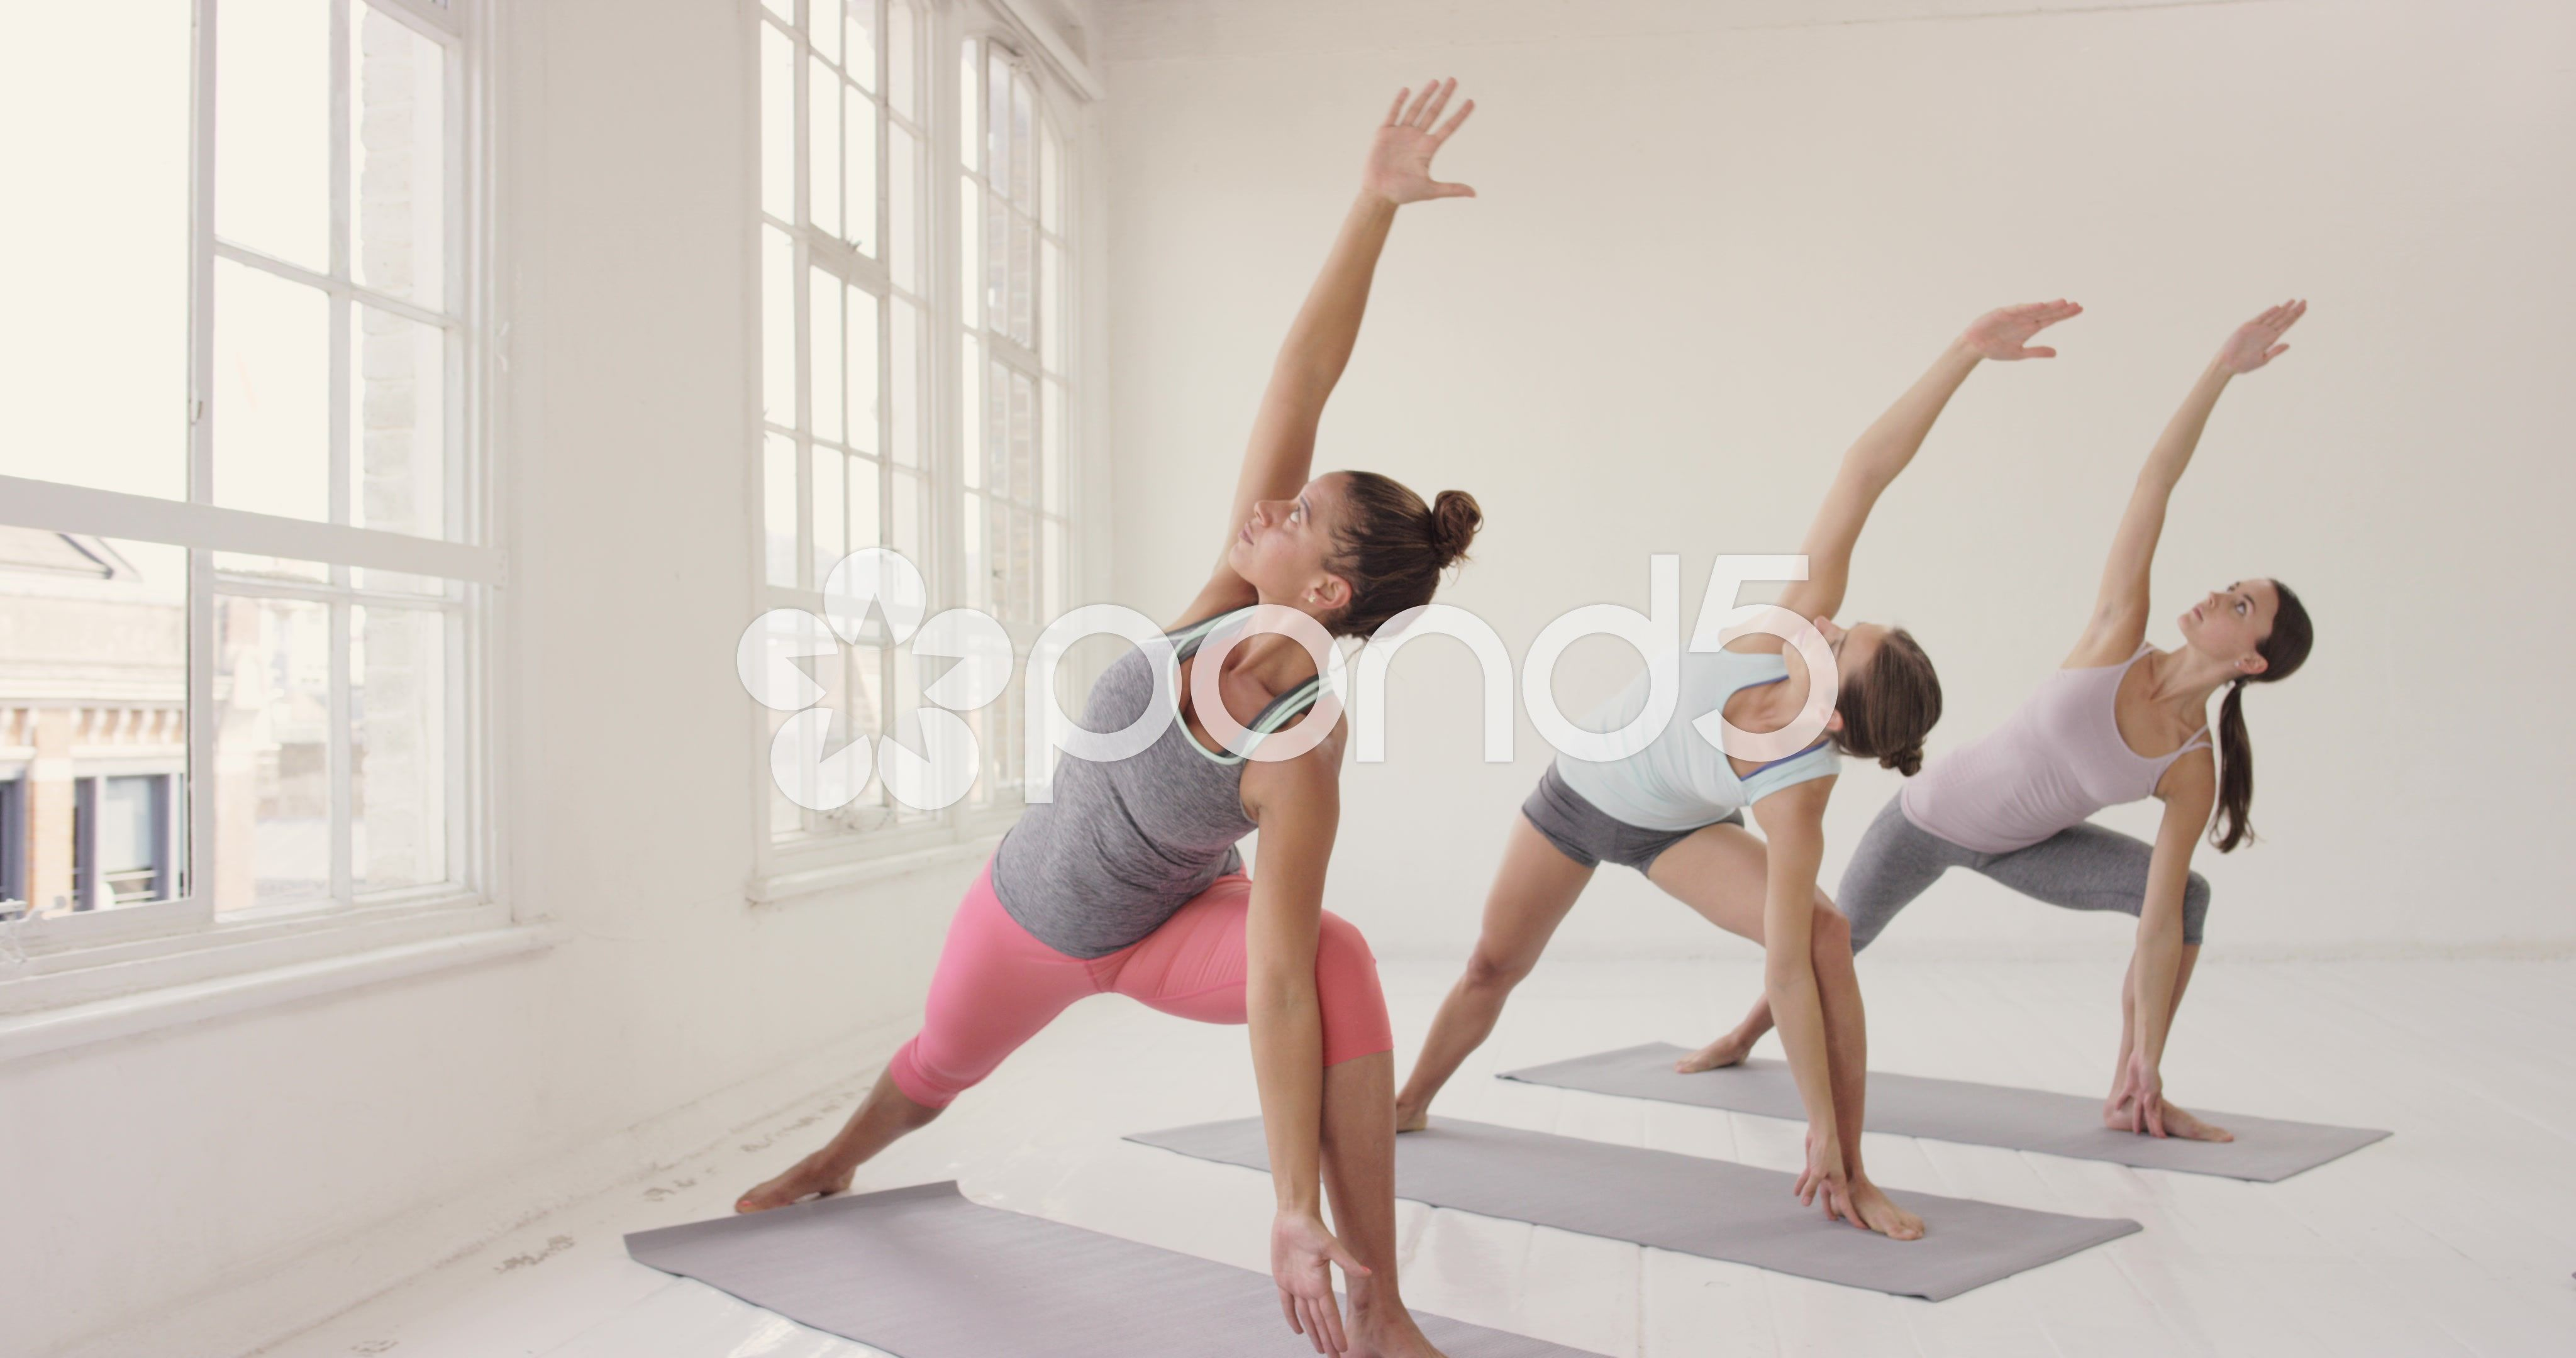 Yoga Class Multi Racial Group Of Women Exercising Fitness Healthy Lifestyle Stock Footage Racial Group Fitness Healthy Lifestyle Yoga Class Warrior Pose Yoga